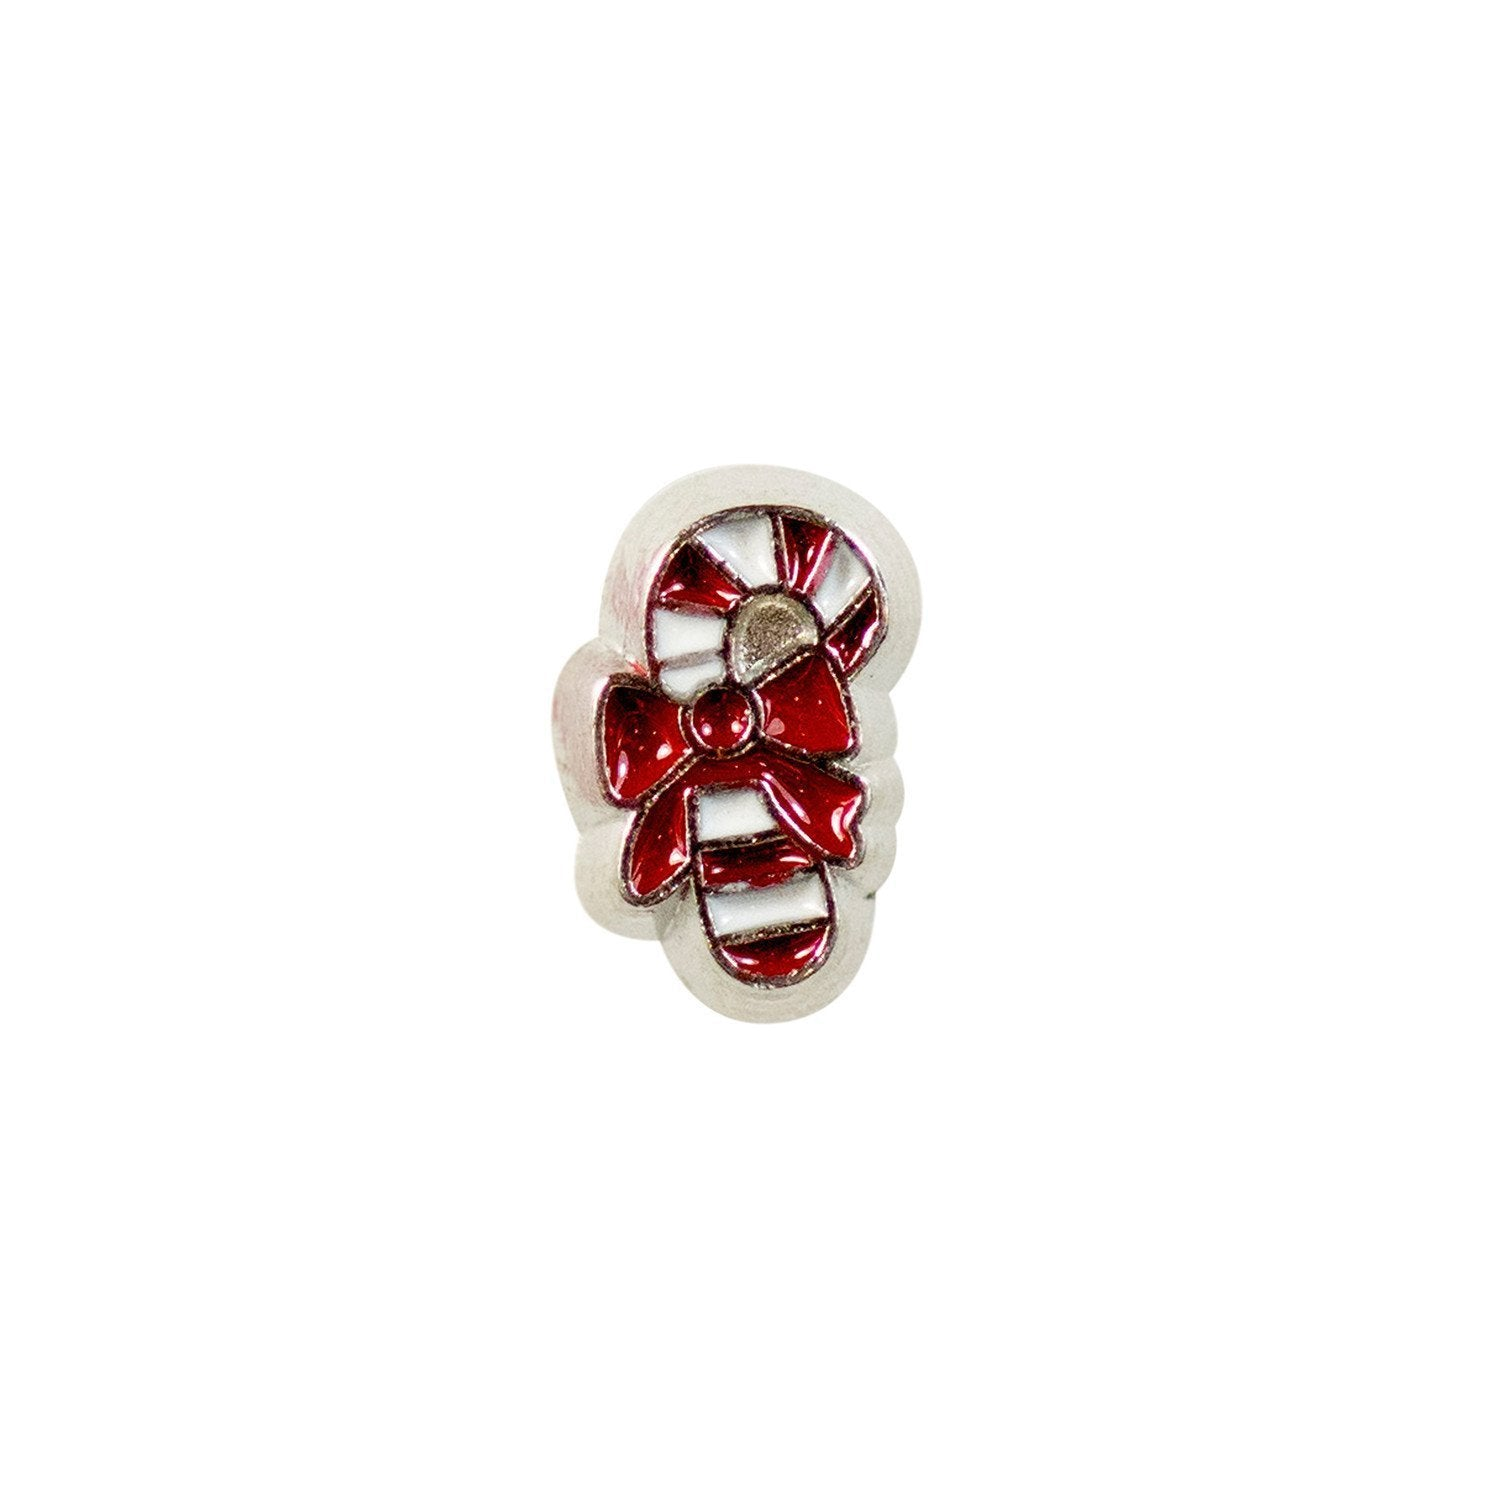 Memory Locket Charm - Candy cane 1